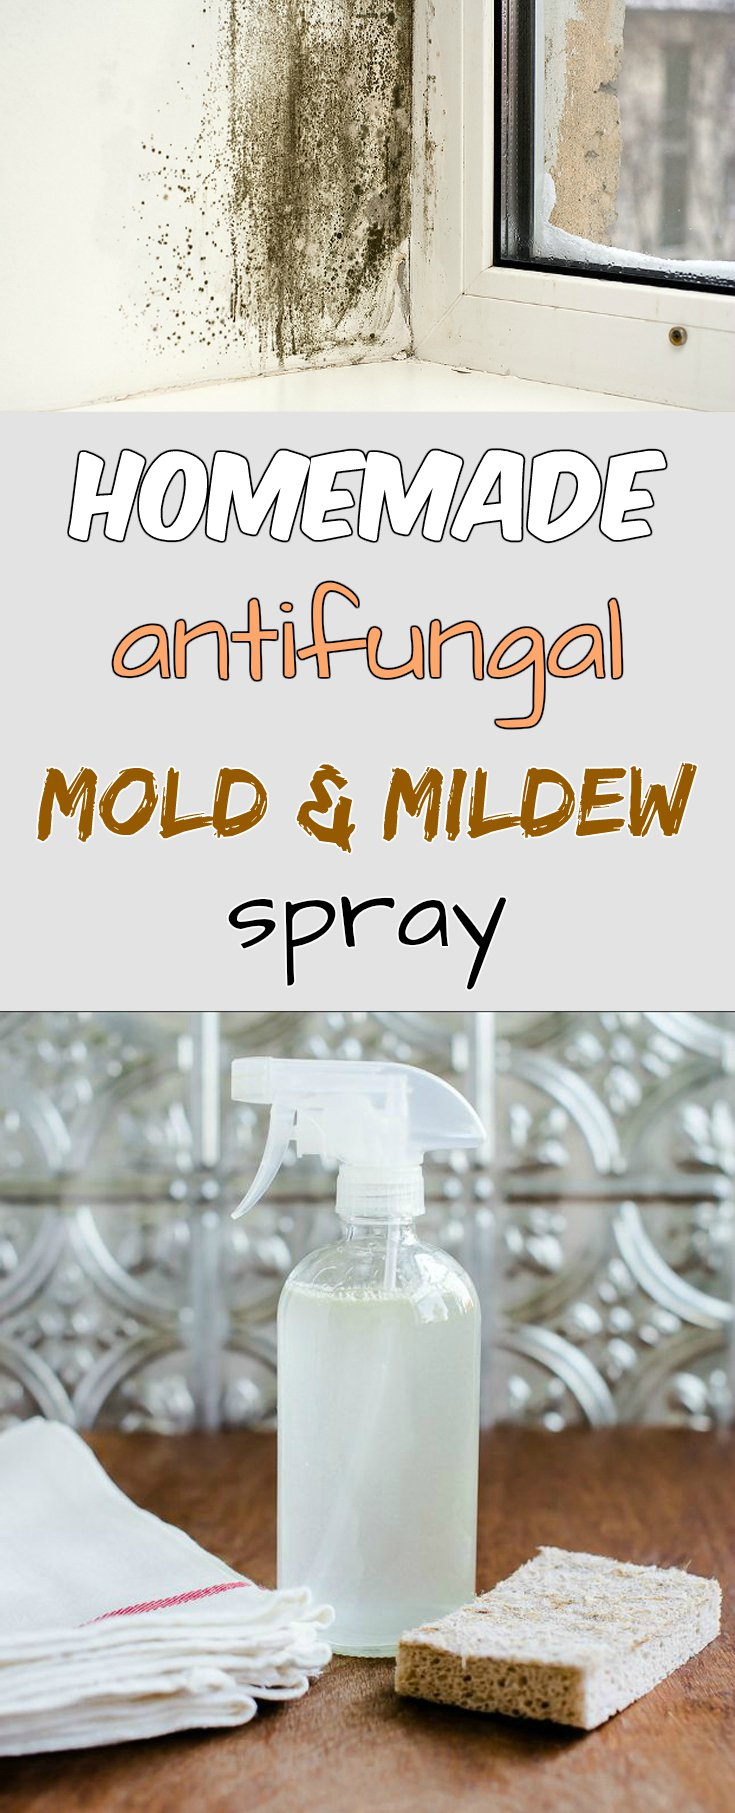 Homemade Antifungal Mold And Mildew Spray